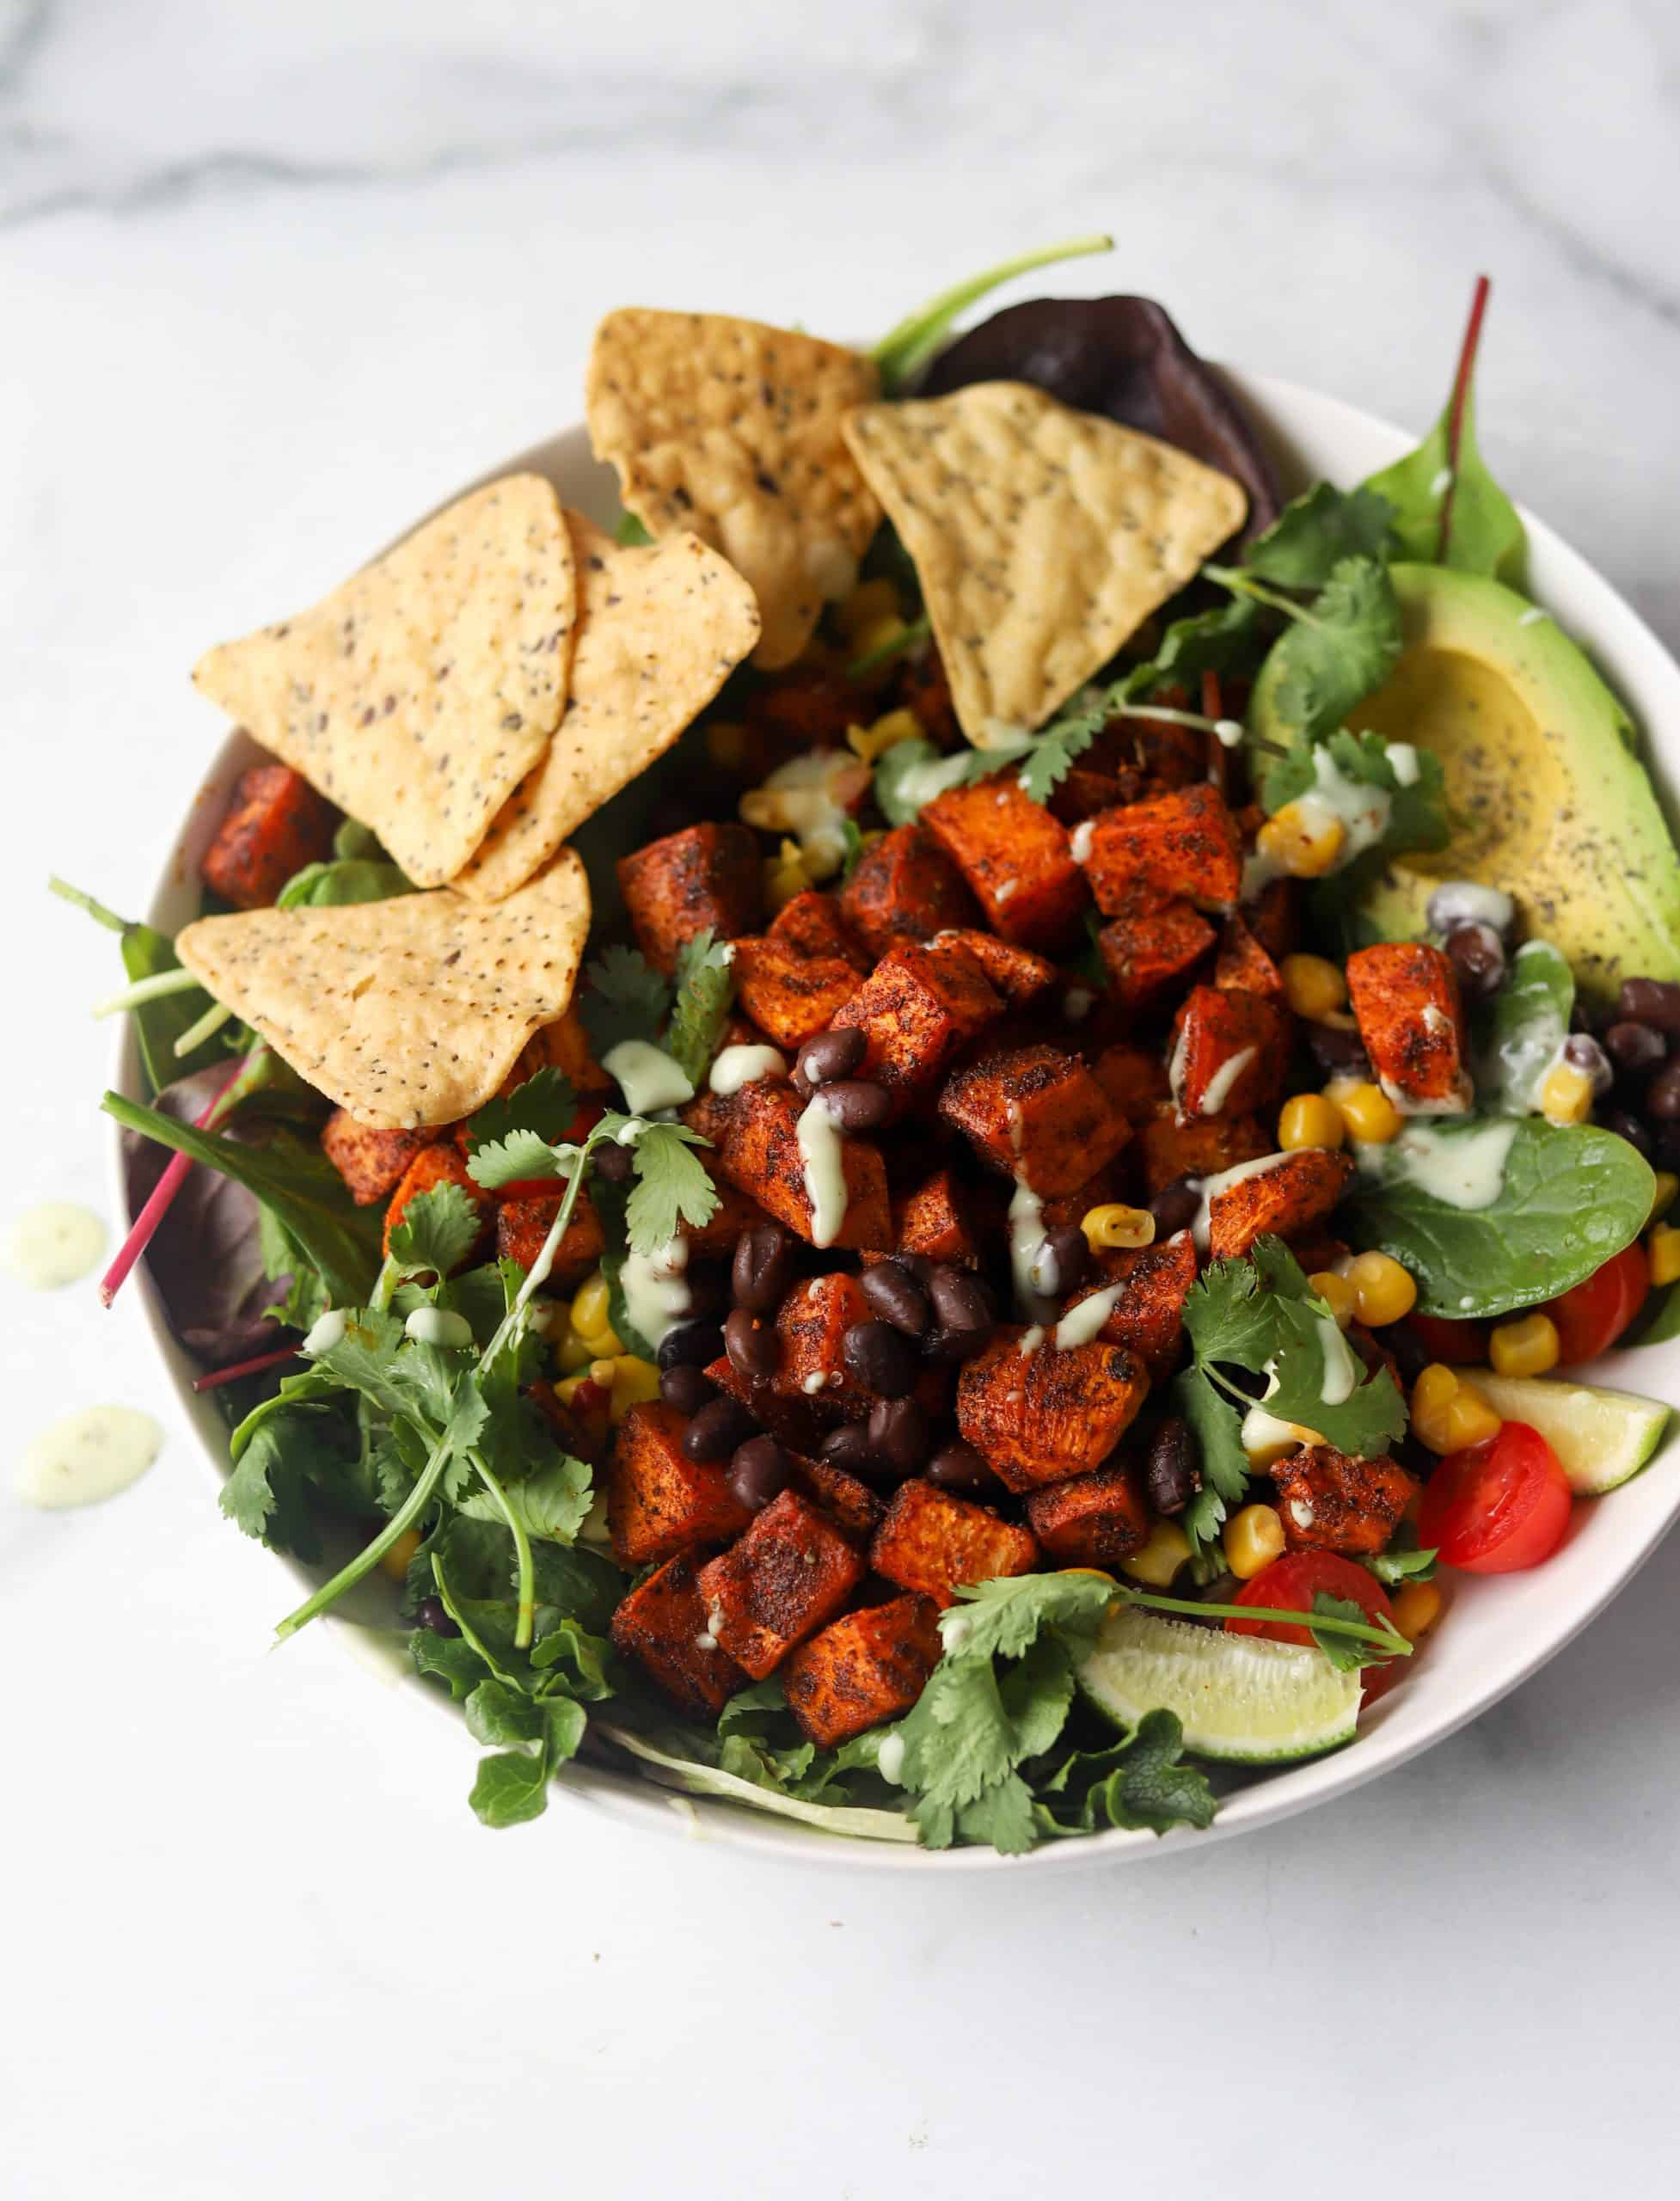 Roasted sweet potatoes and taco salad fixings in a white bowl.